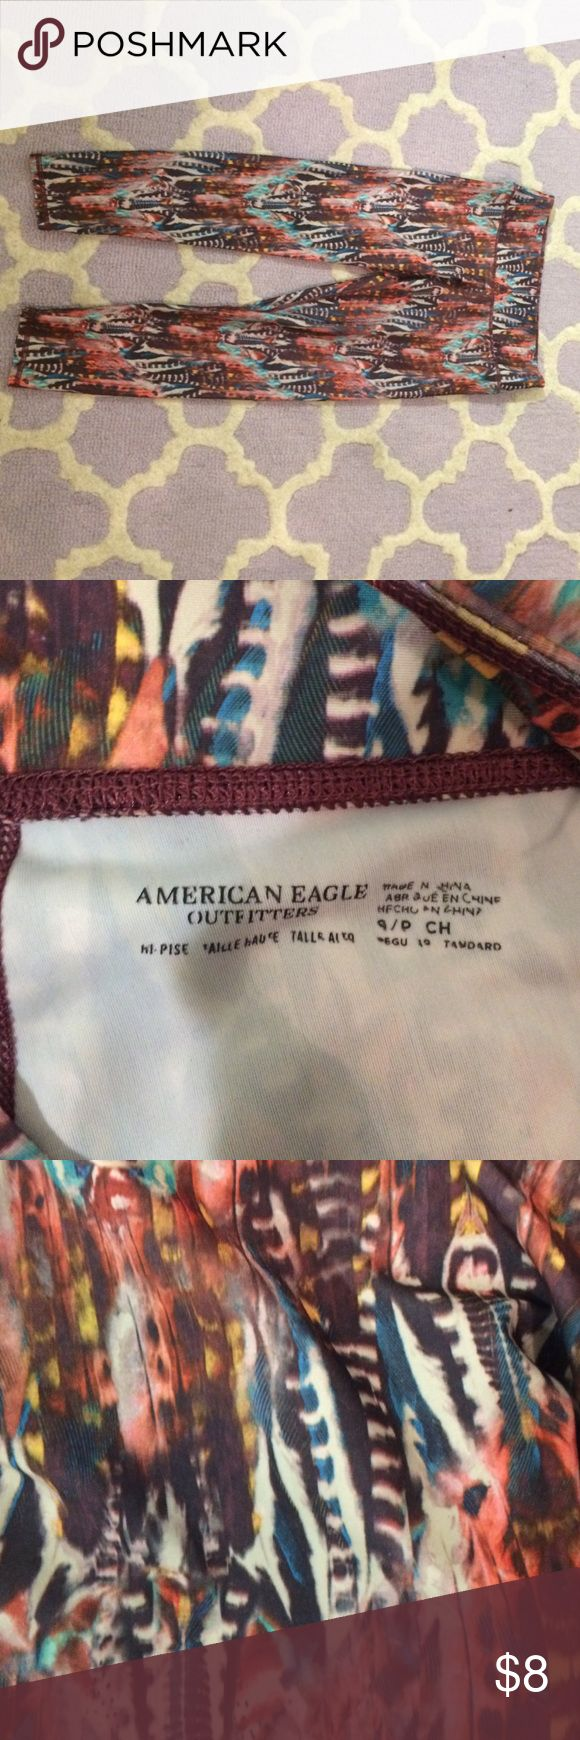 American Eagle High Rise Cropped Leggings These leggings are perfect for any workout! Super comfortable and great condition! American Eagle Outfitters Pants Leggings